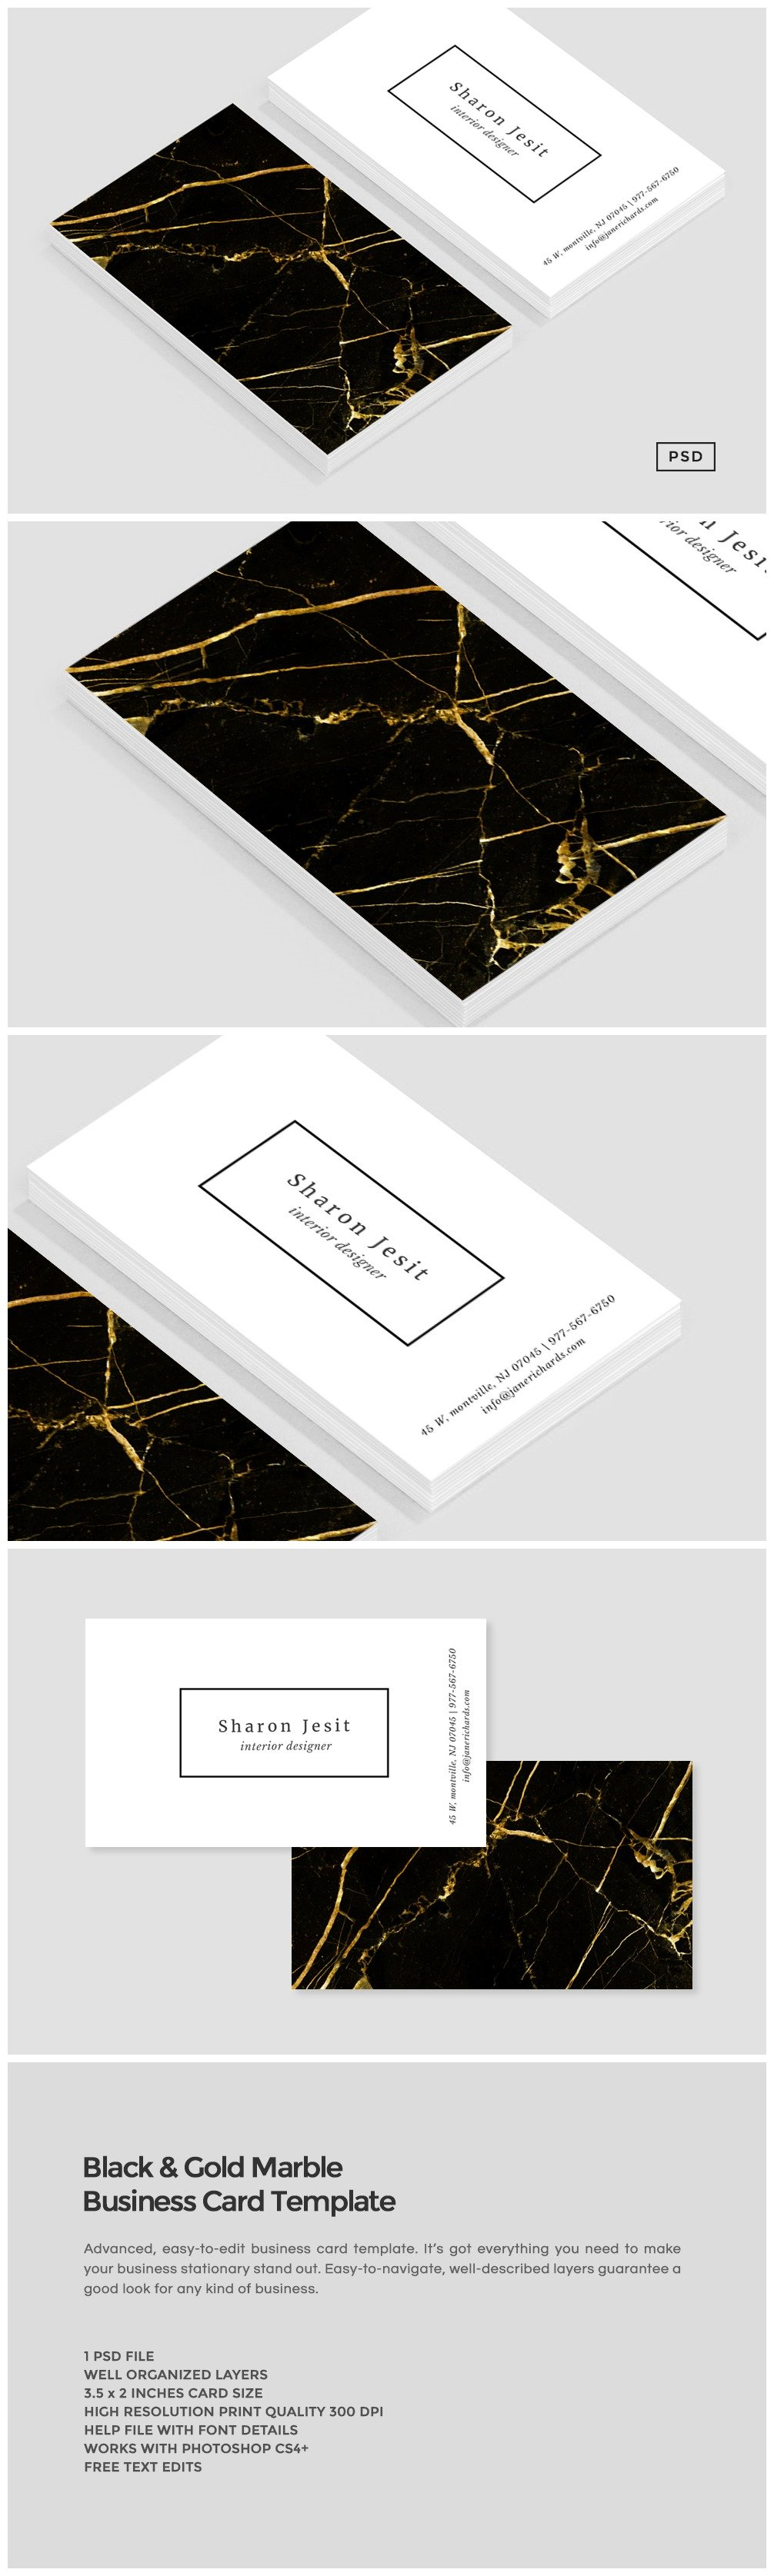 Black gold marble business card business card templates black gold marble business card business card templates creative market reheart Gallery